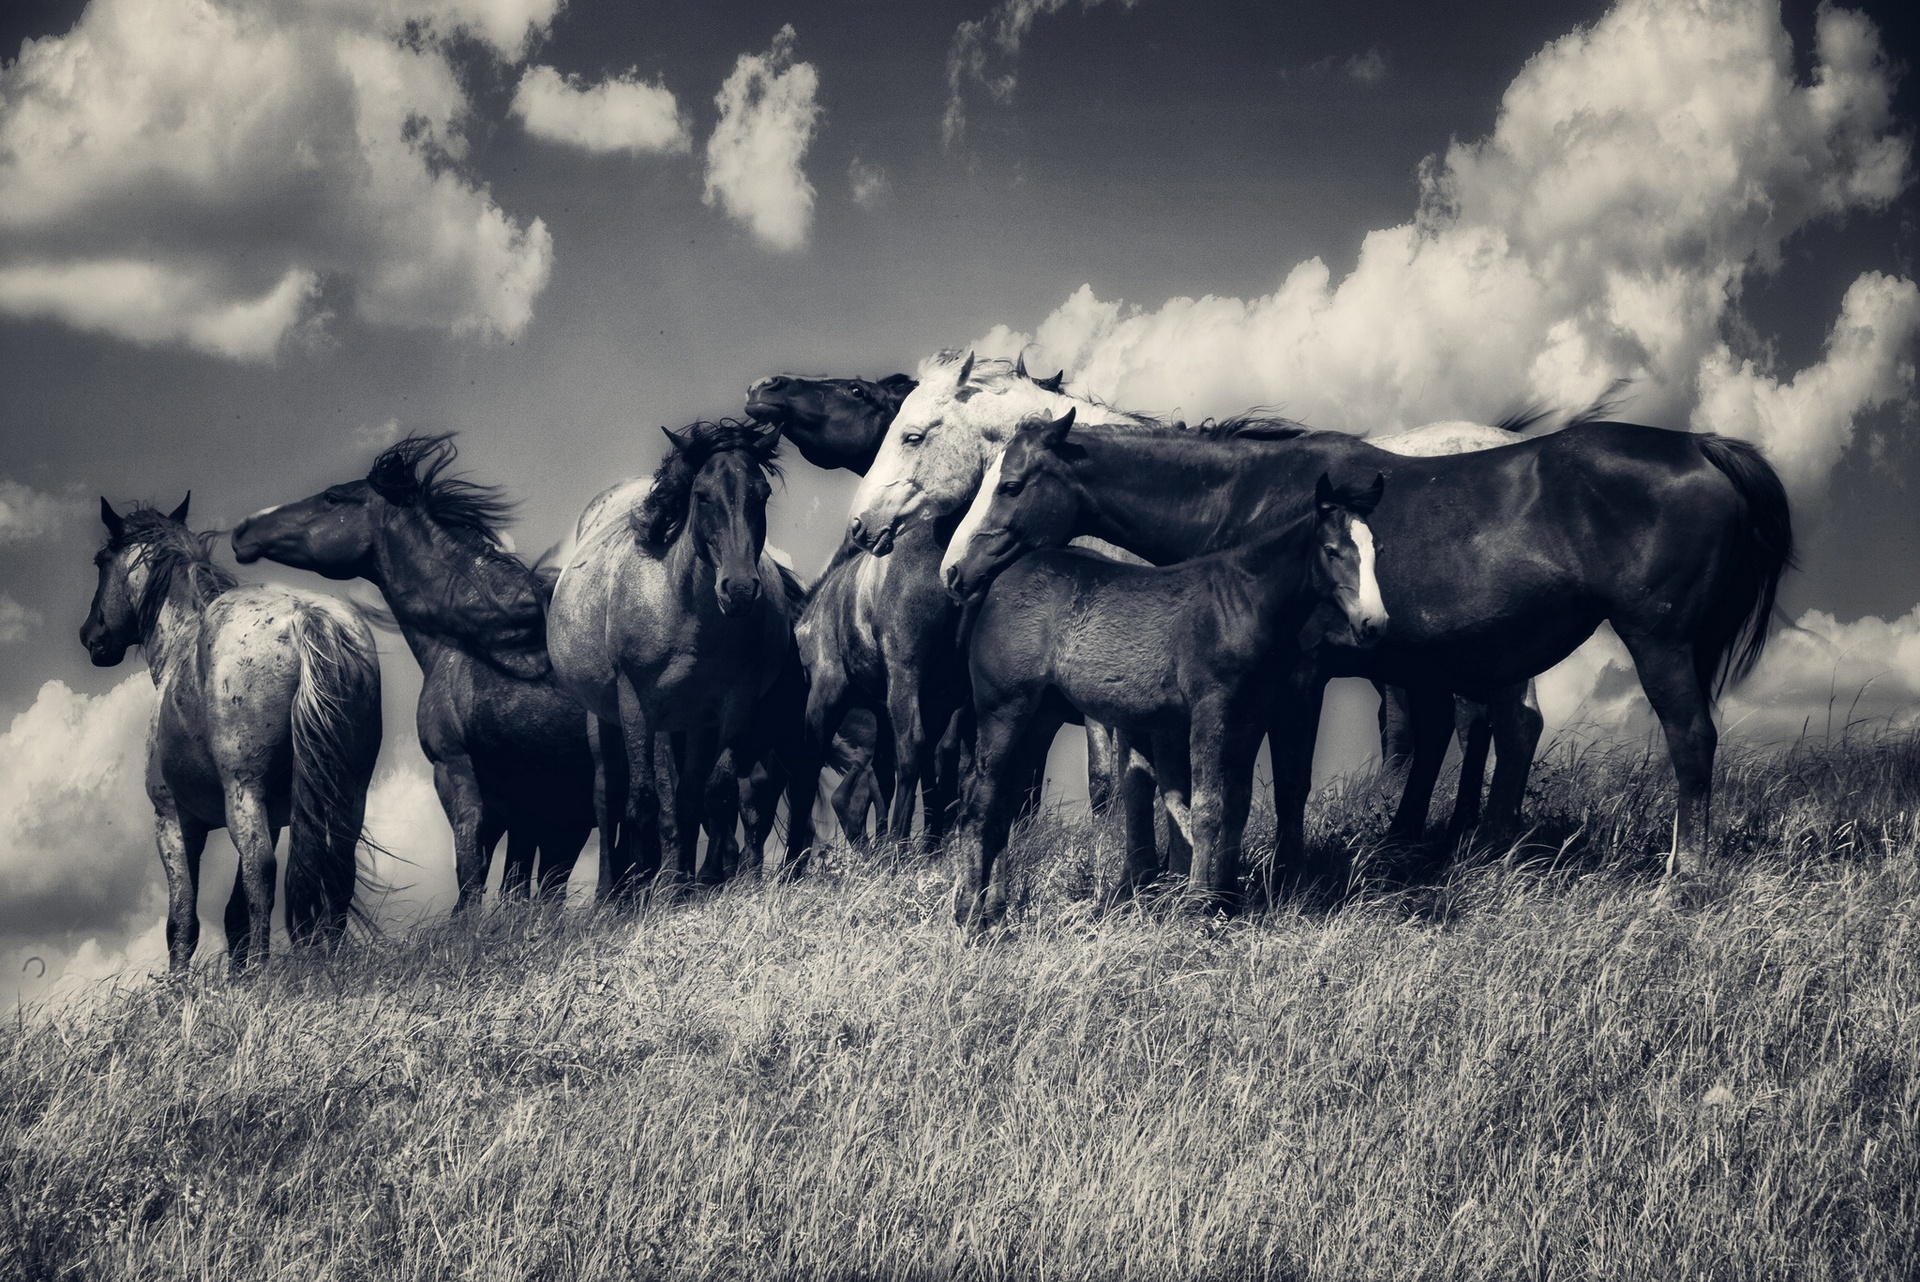 Horse horses herd meadow clouds black and white wallpaper 1920x1282 1920x1282